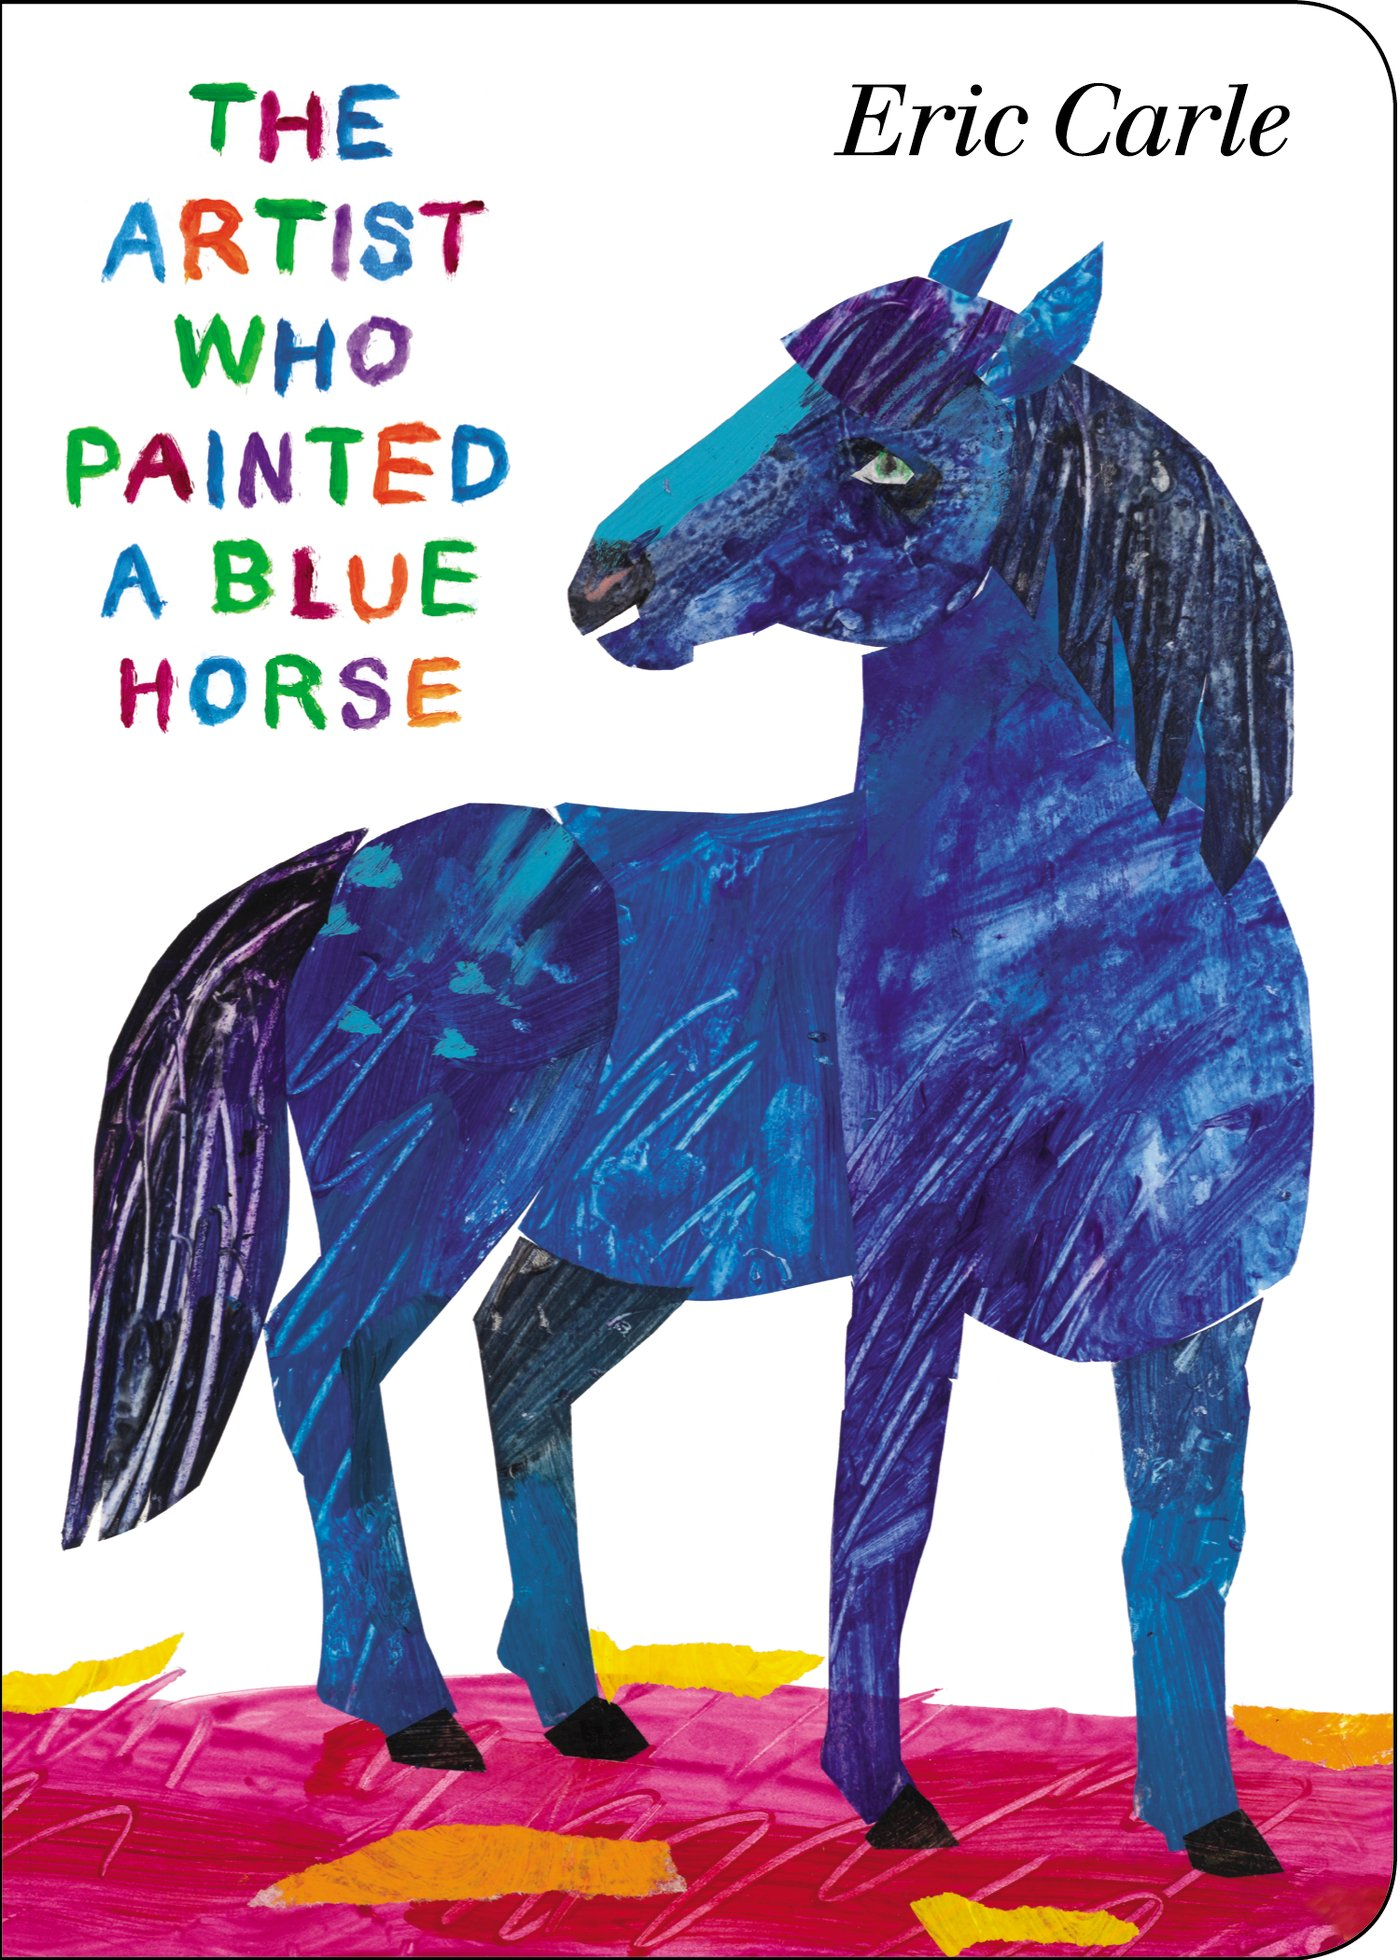 Blue Horses Painting The Artist Who Painted a Blue